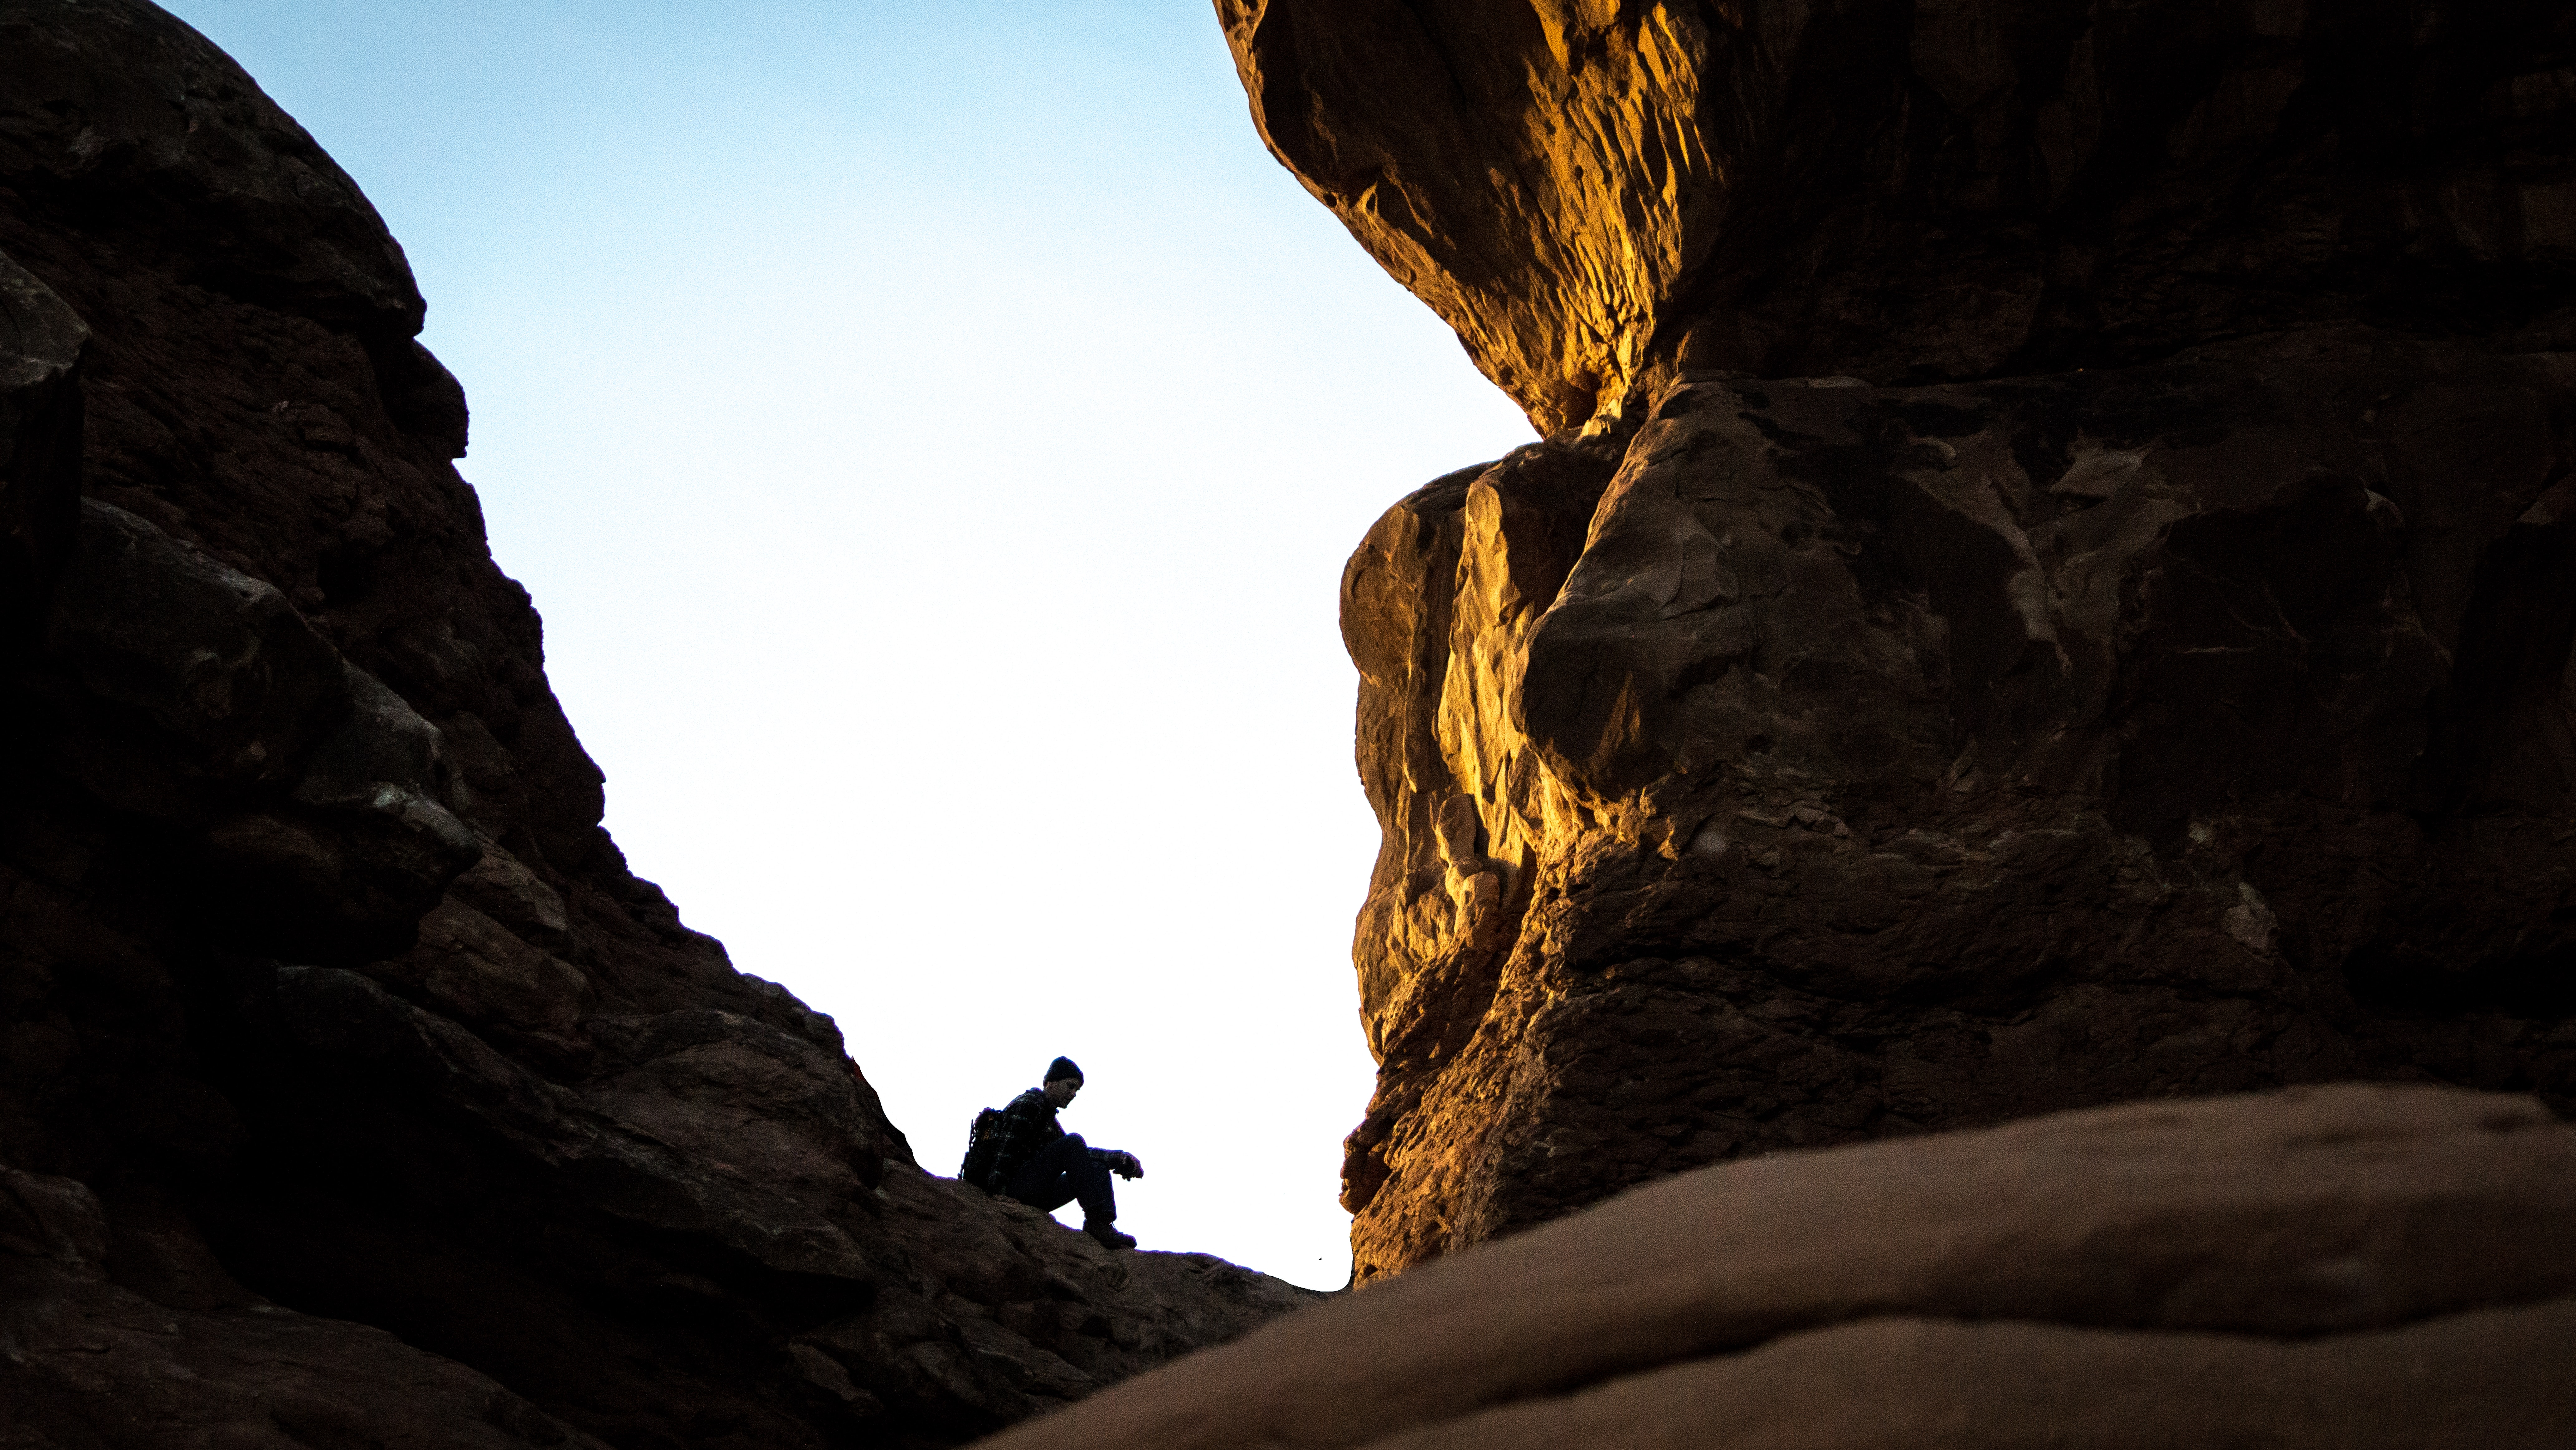 silhouette of person sitting on brown rock